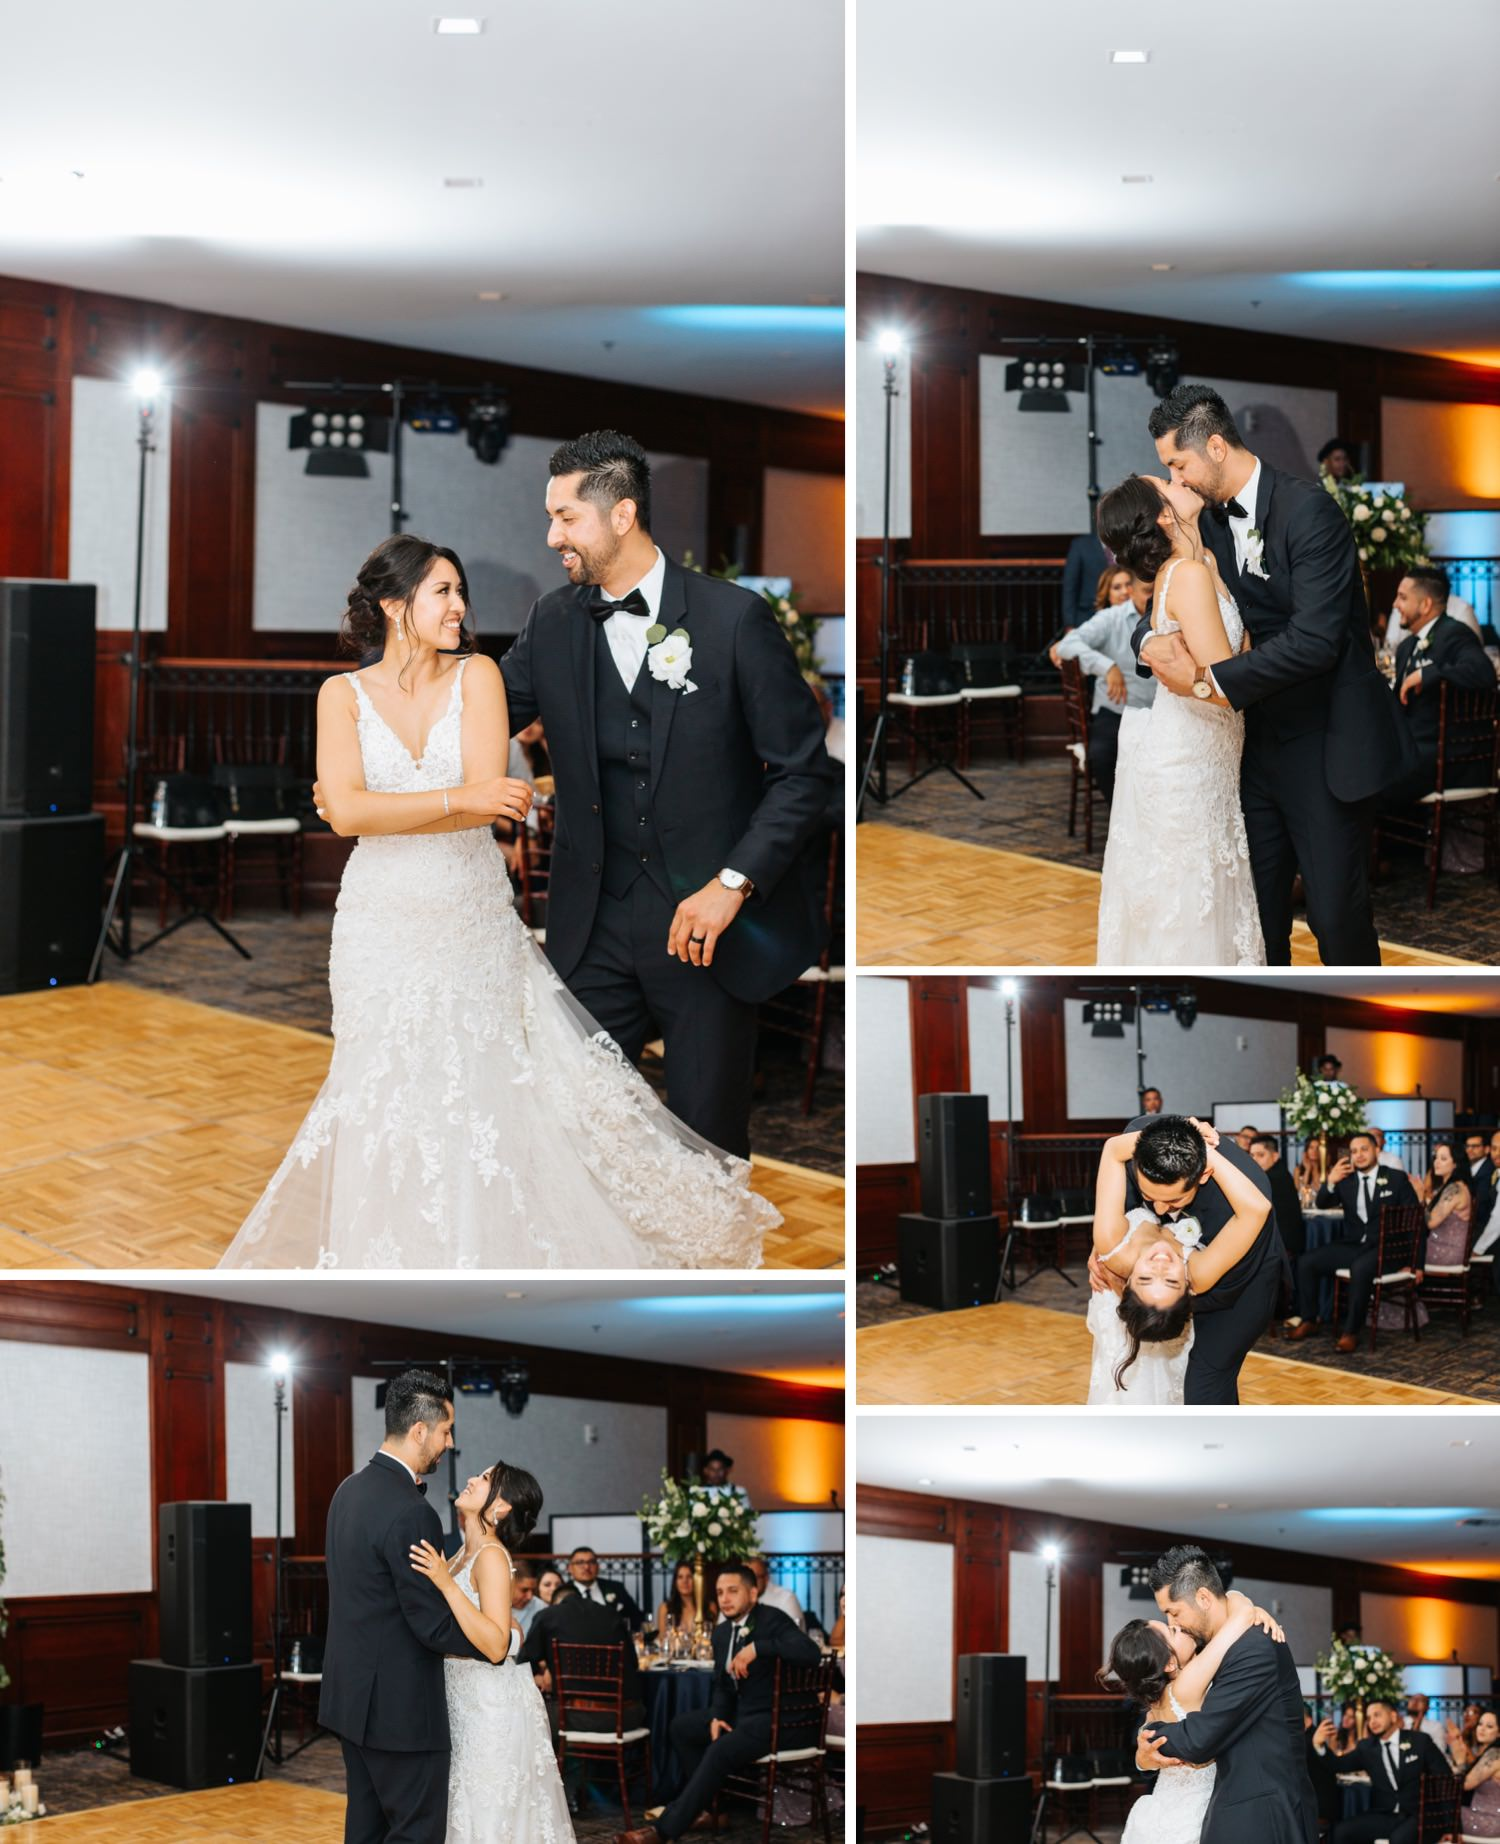 Bride and Groom First Dance - Romantic First Dance between Bride and Groom - https://brittneyhannonphotography.com